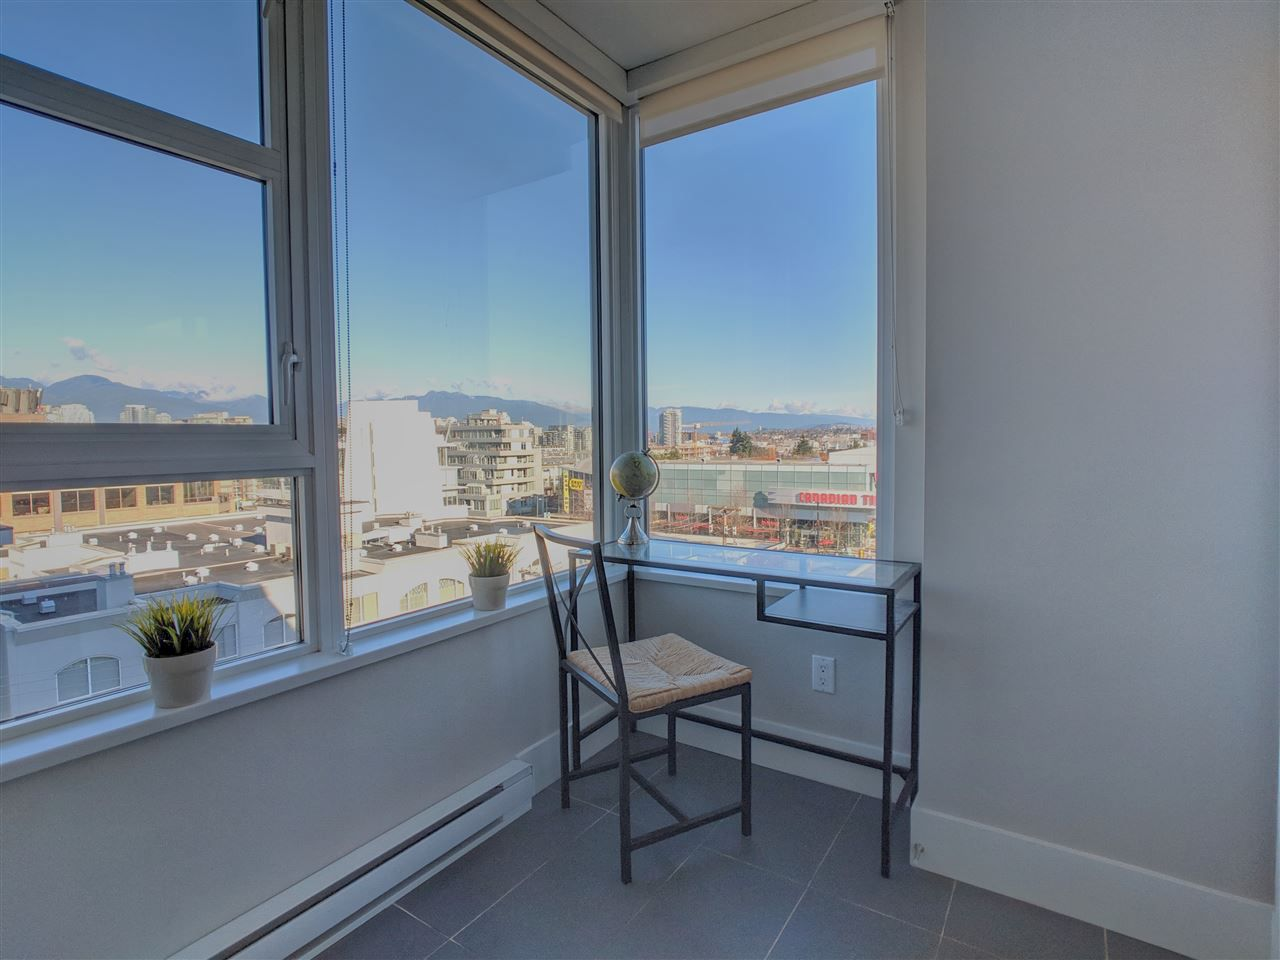 """Main Photo: 805 538 W 7TH Avenue in Vancouver: Fairview VW Condo for sale in """"Cambie +7"""" (Vancouver West)  : MLS®# R2338152"""